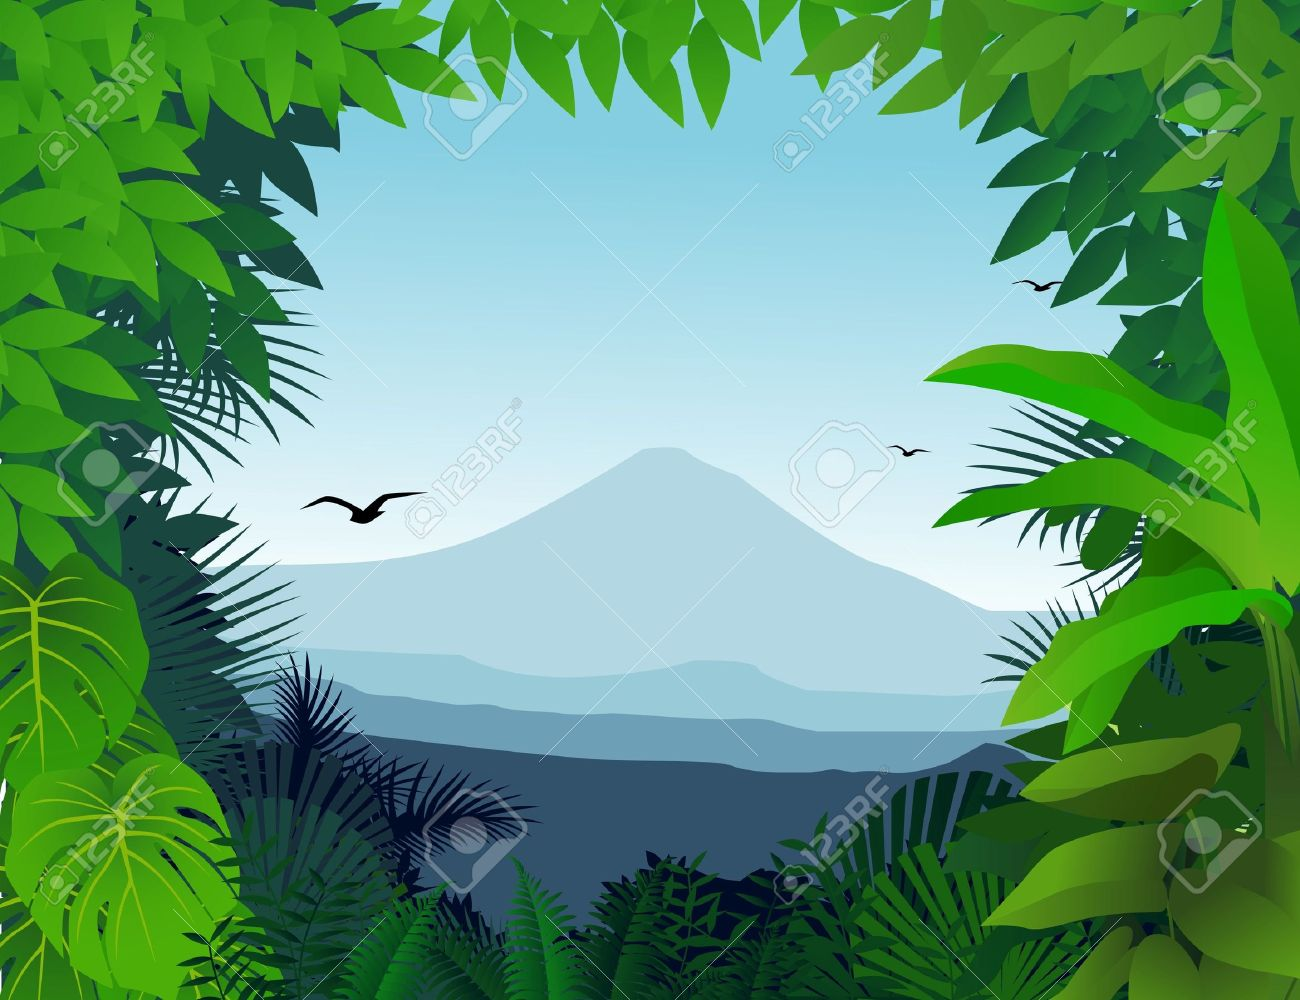 nature background royalty free cliparts vectors and stock rh 123rf com vector jungle tree vector jungle royalty free graphics